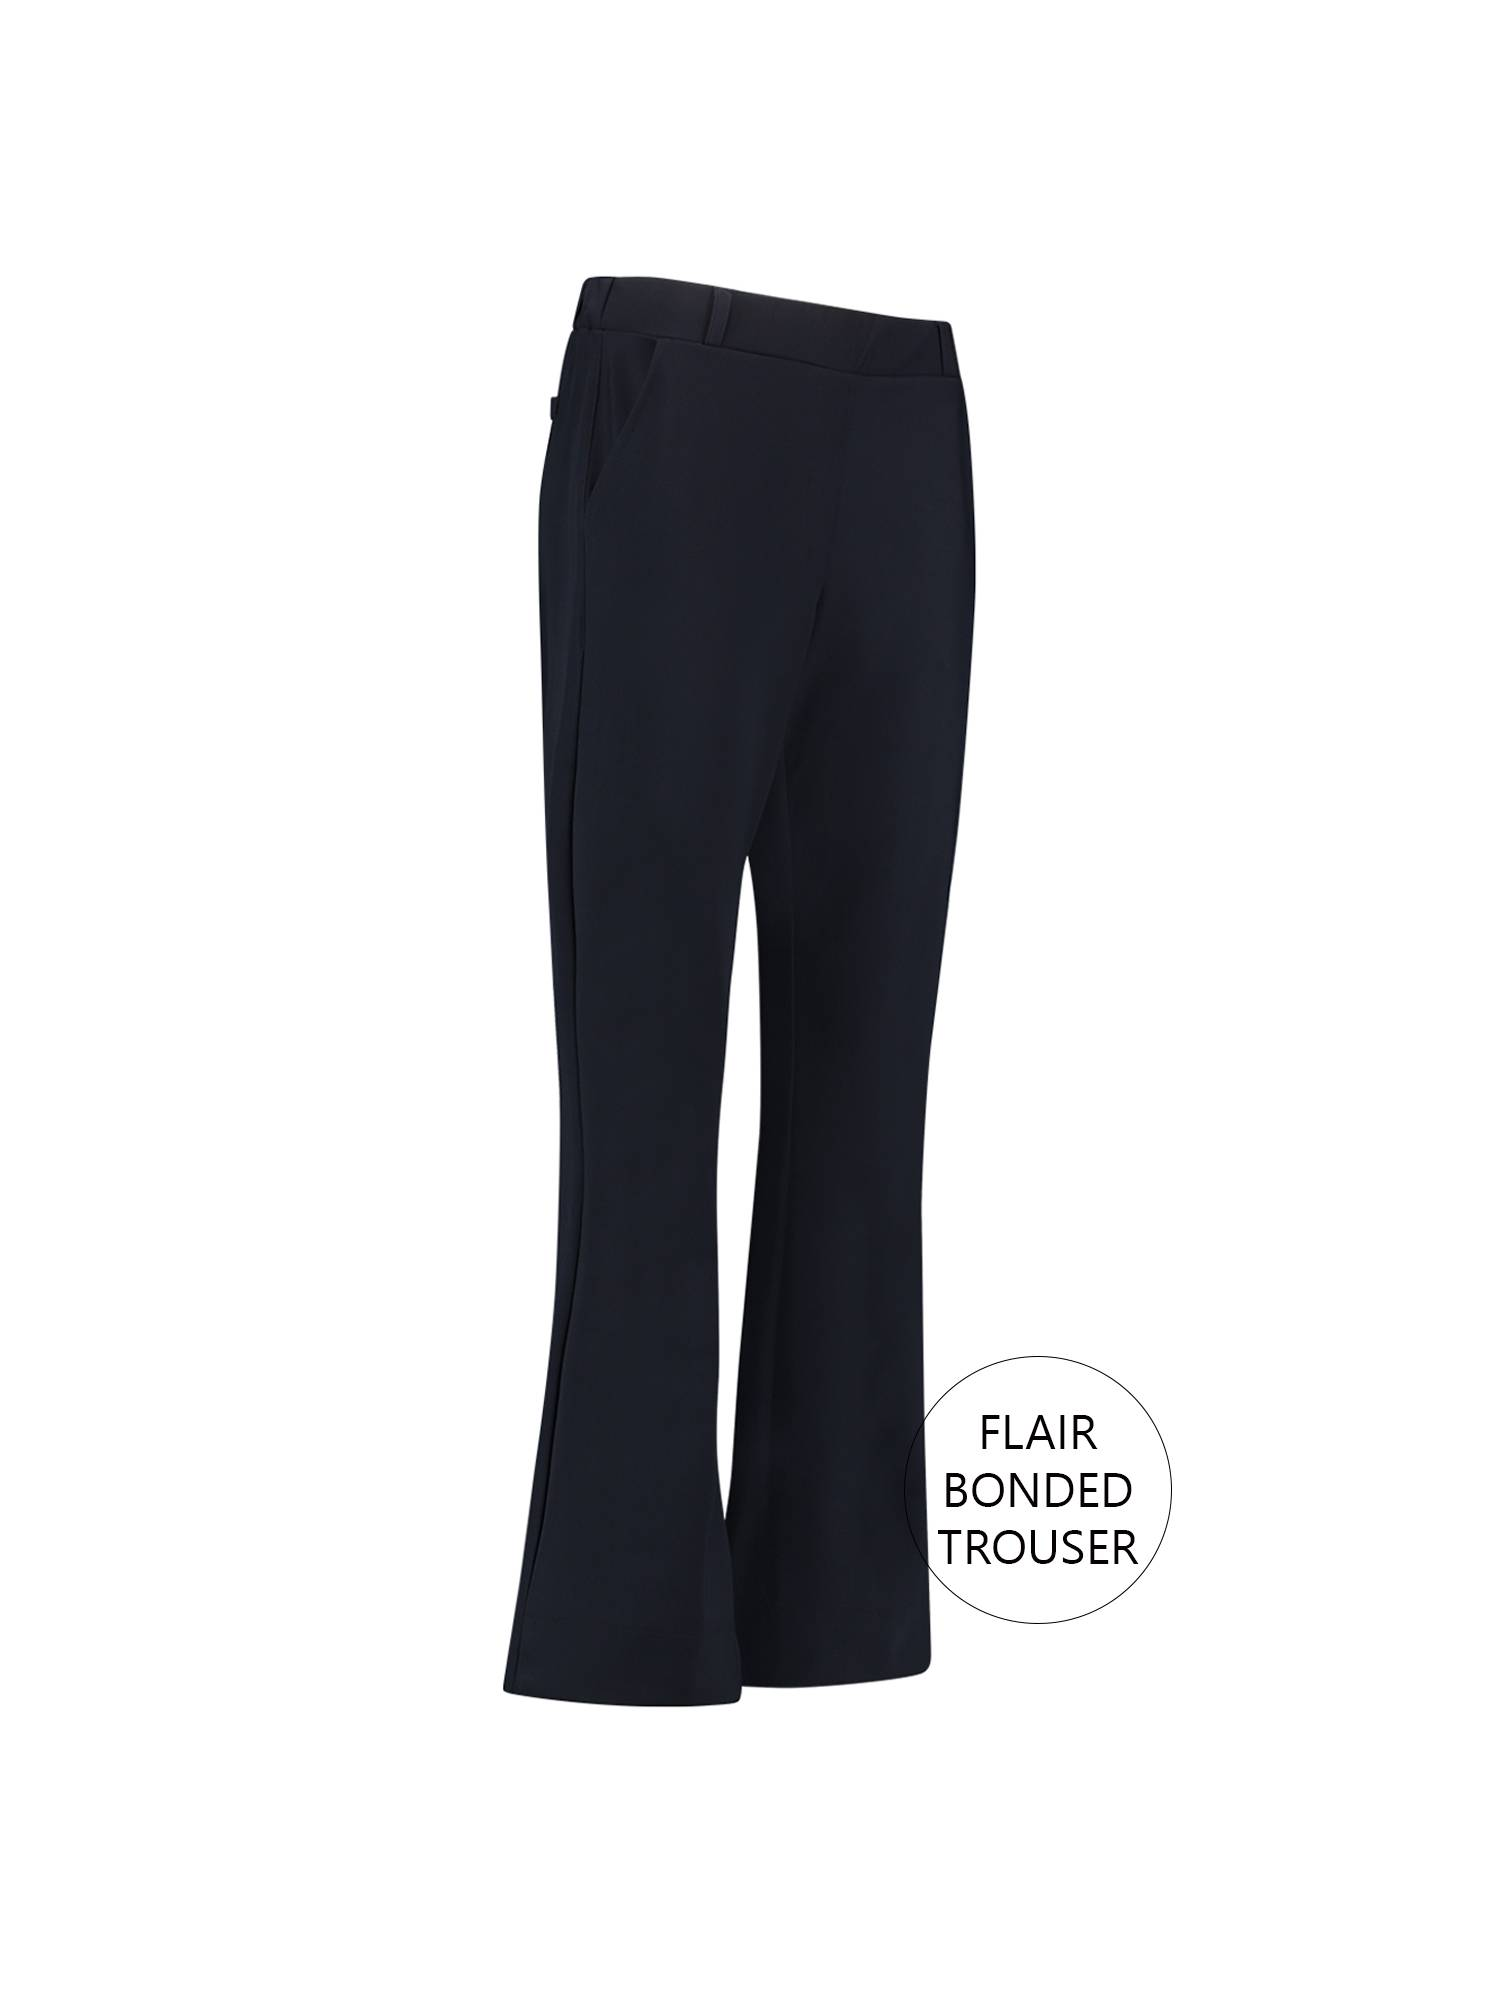 Studio Anneloes 02309 Flair bonded trousers 6900 Dark blue | Pico Women Fashion & More